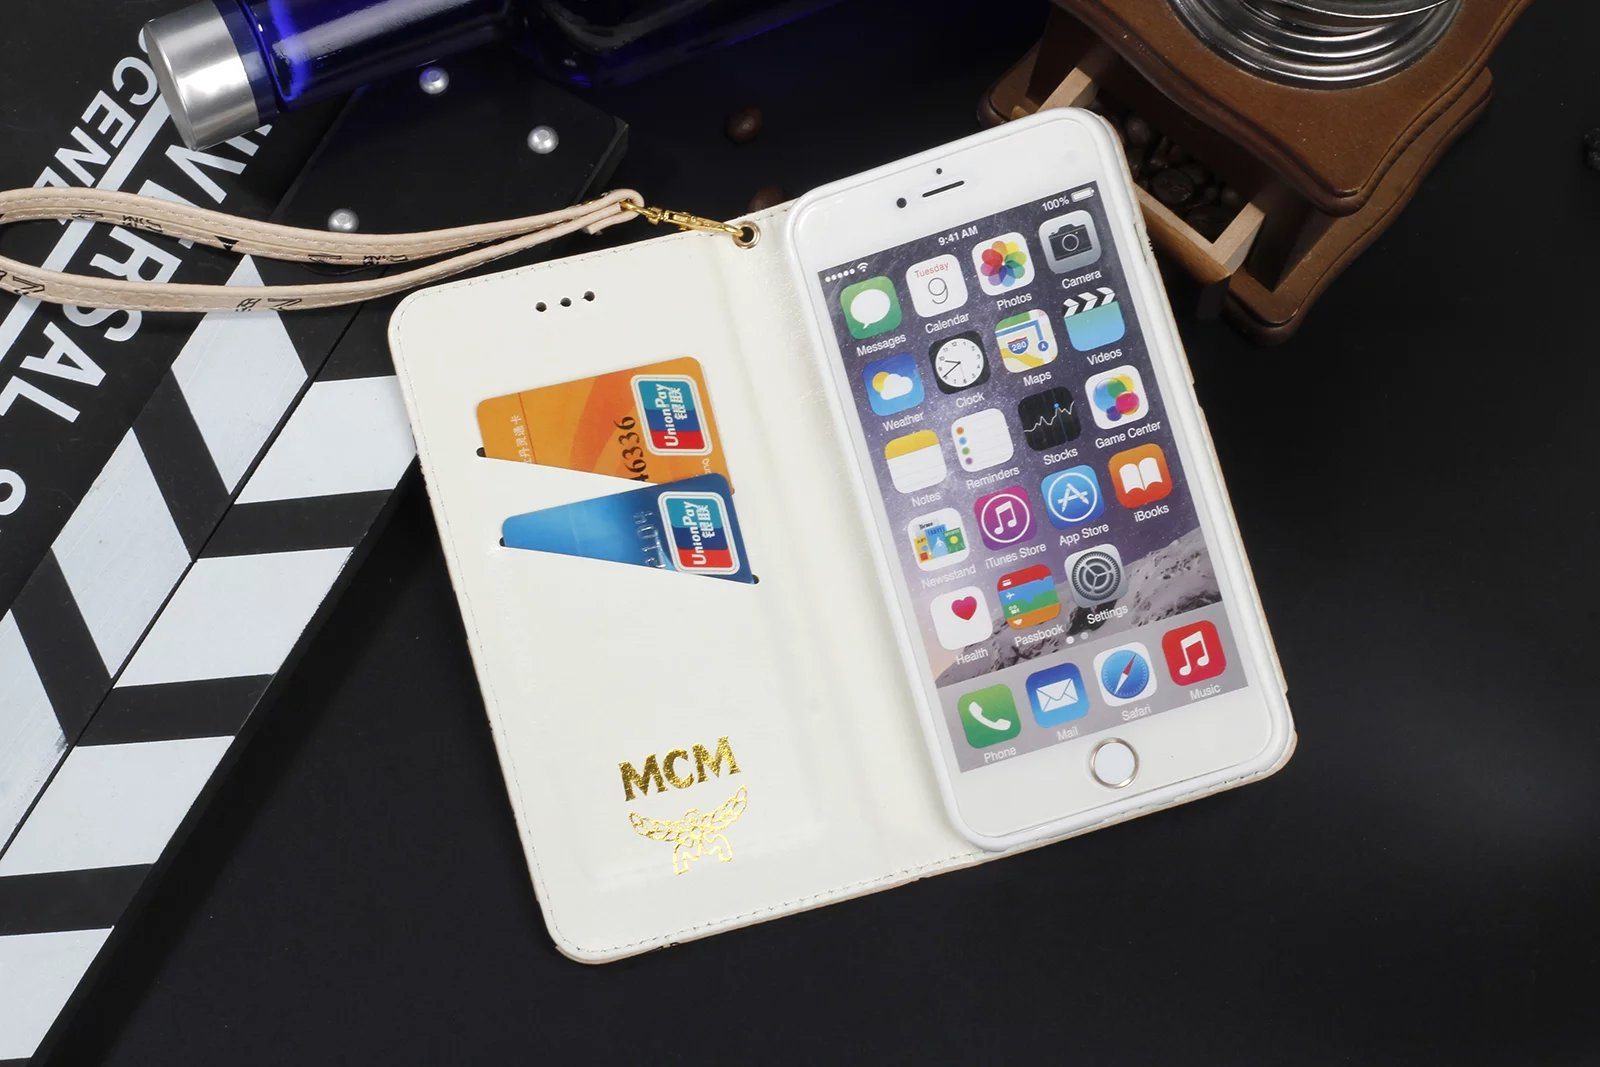 iphone 6s case cover cases iphone 6s fashion iphone6s case cell phone case website designer iphone wallet iphone 6s make your own case make a cell phone case unique iphone cases premium phone cases